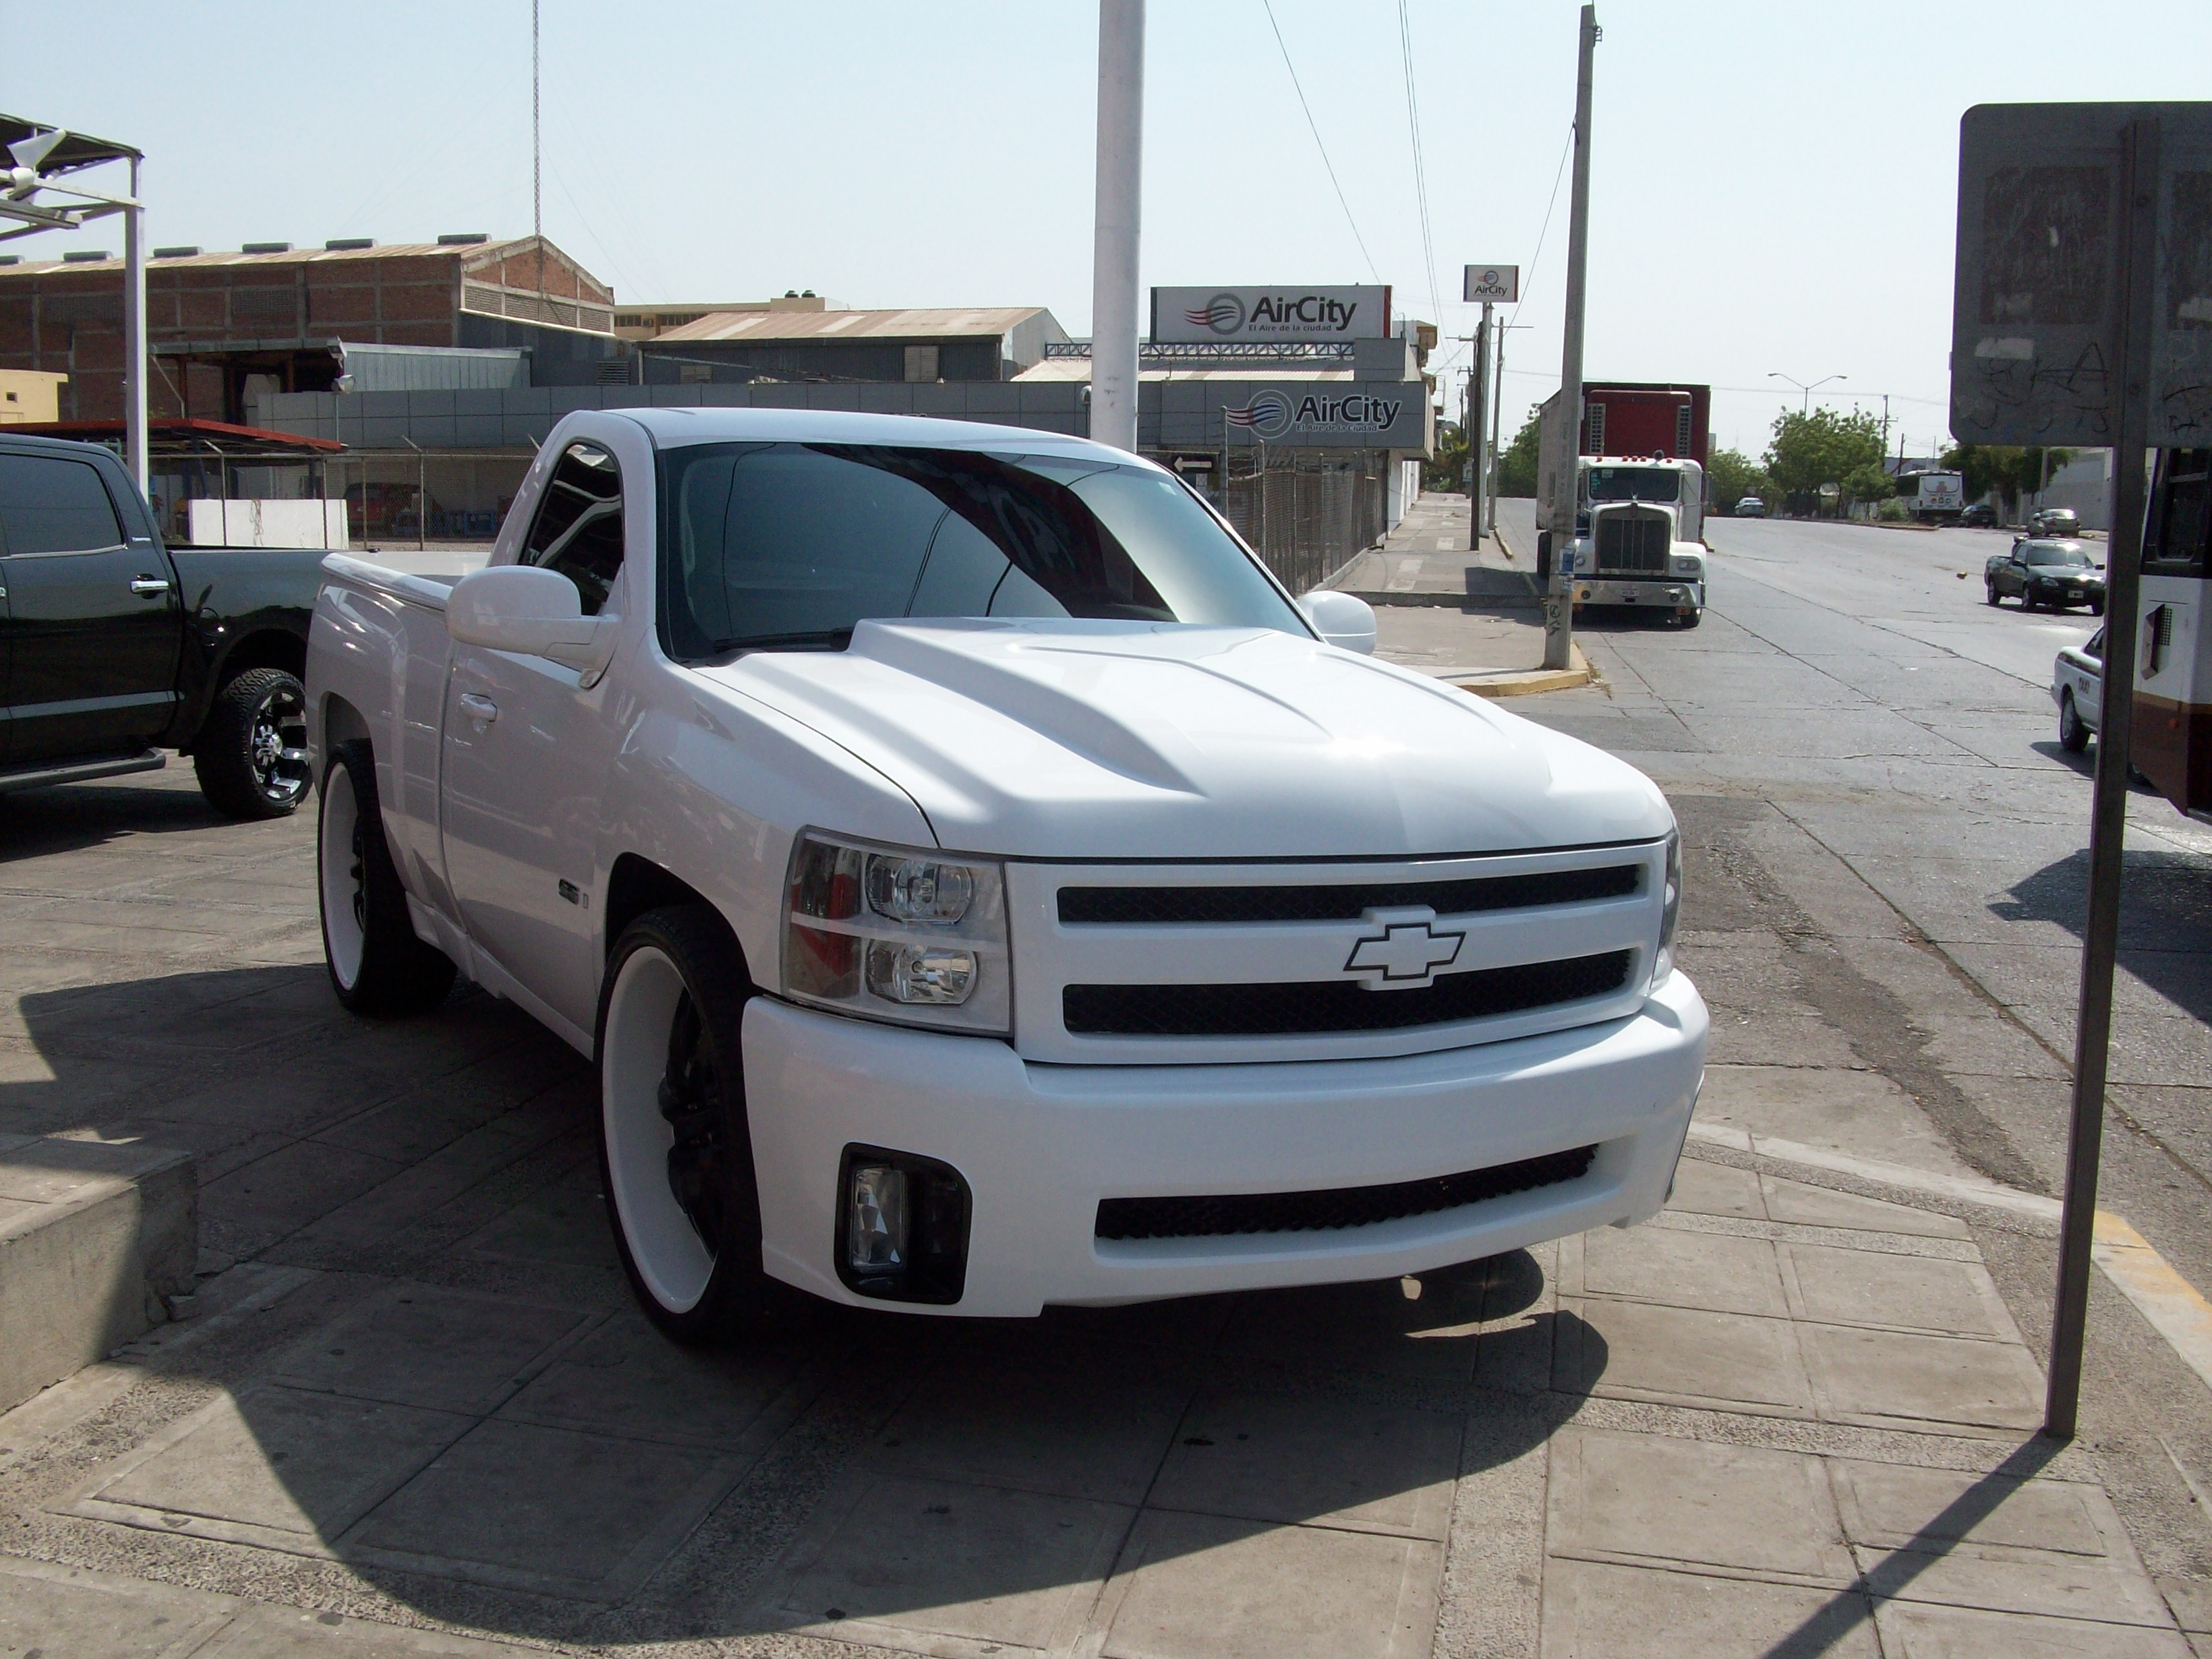 JC_Wheels 2010 Chevrolet Cheyenne Specs, Photos ...